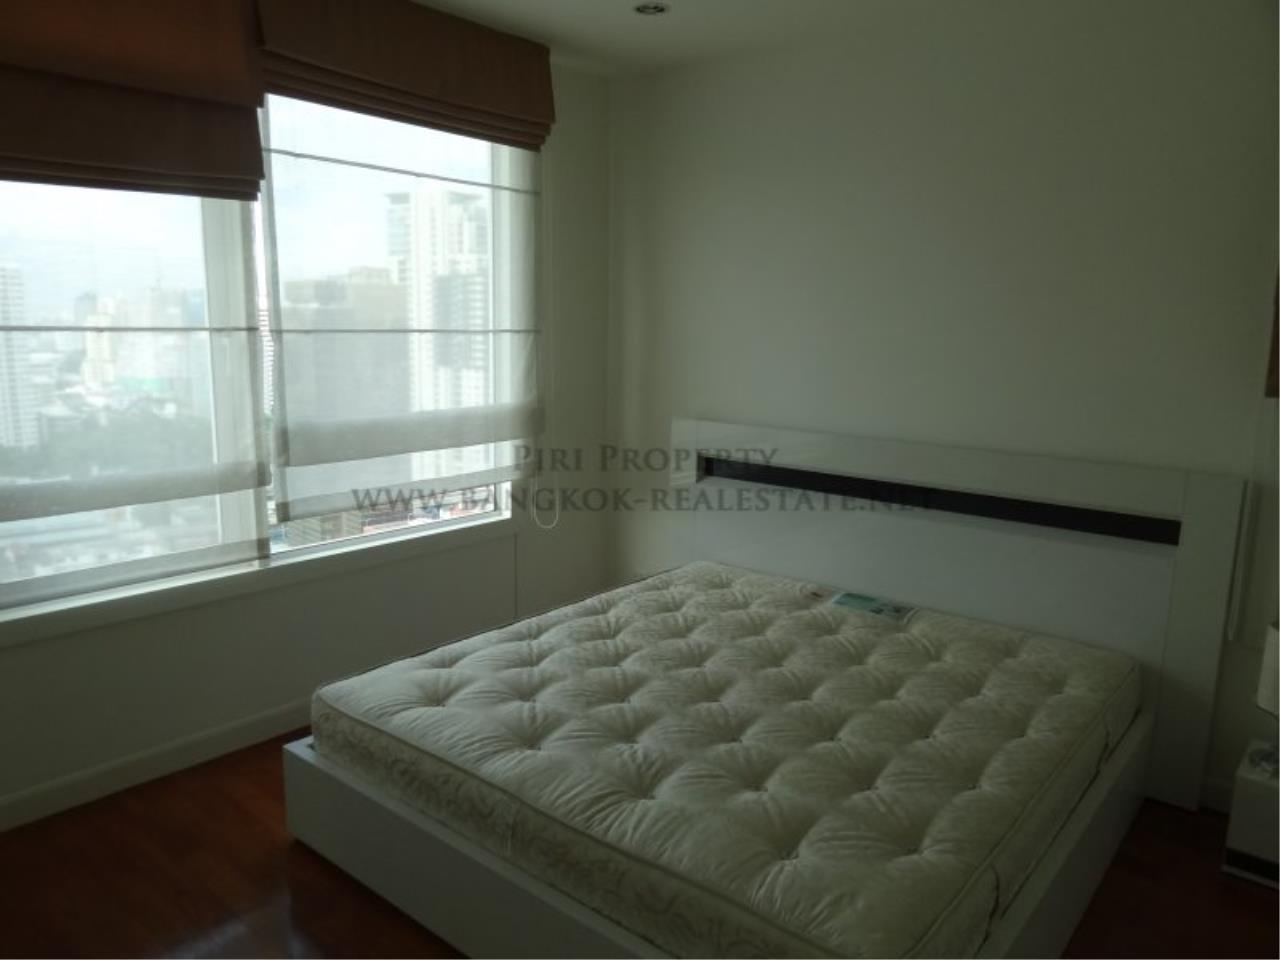 Piri Property Agency's Siri Residence - Big 1 Bedroom Condo in Sukhumvit 24 4